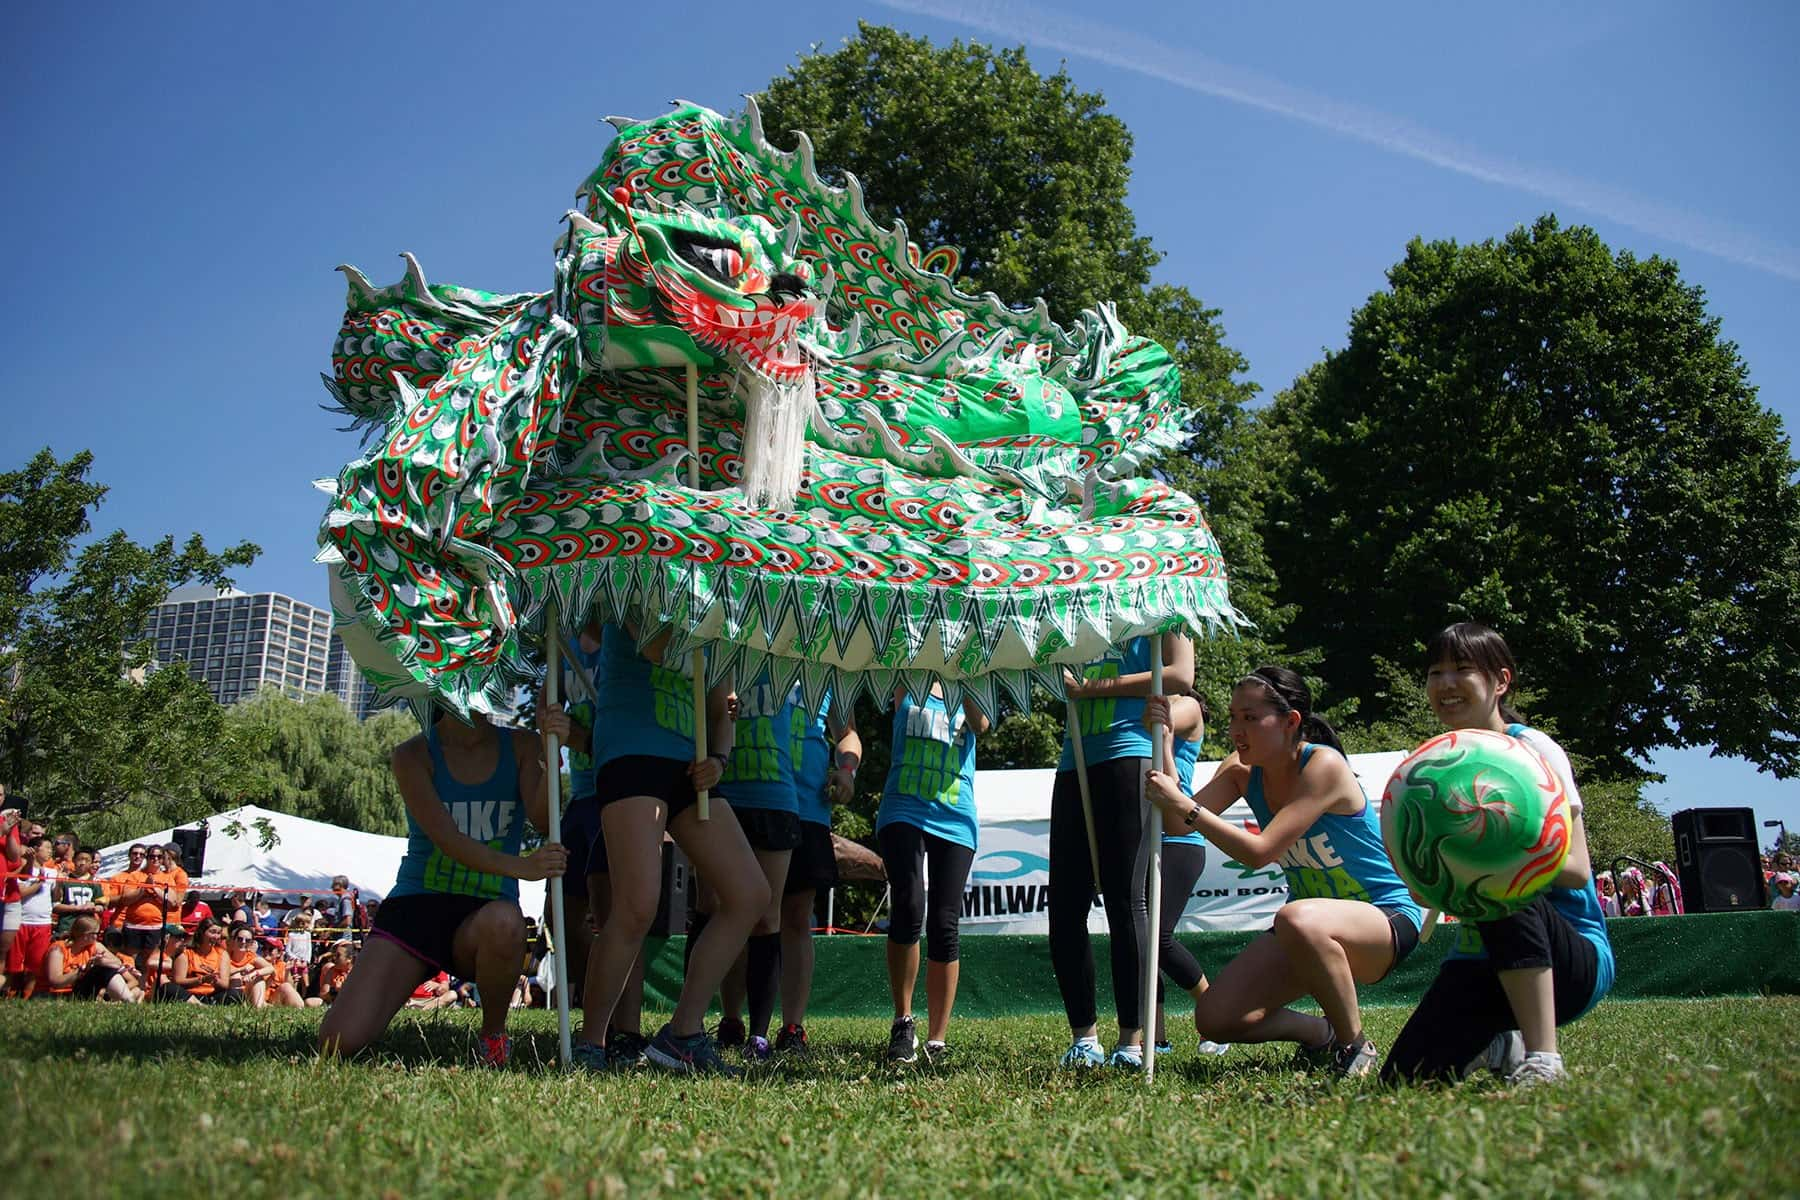 080116_dragonboat_album_02_02